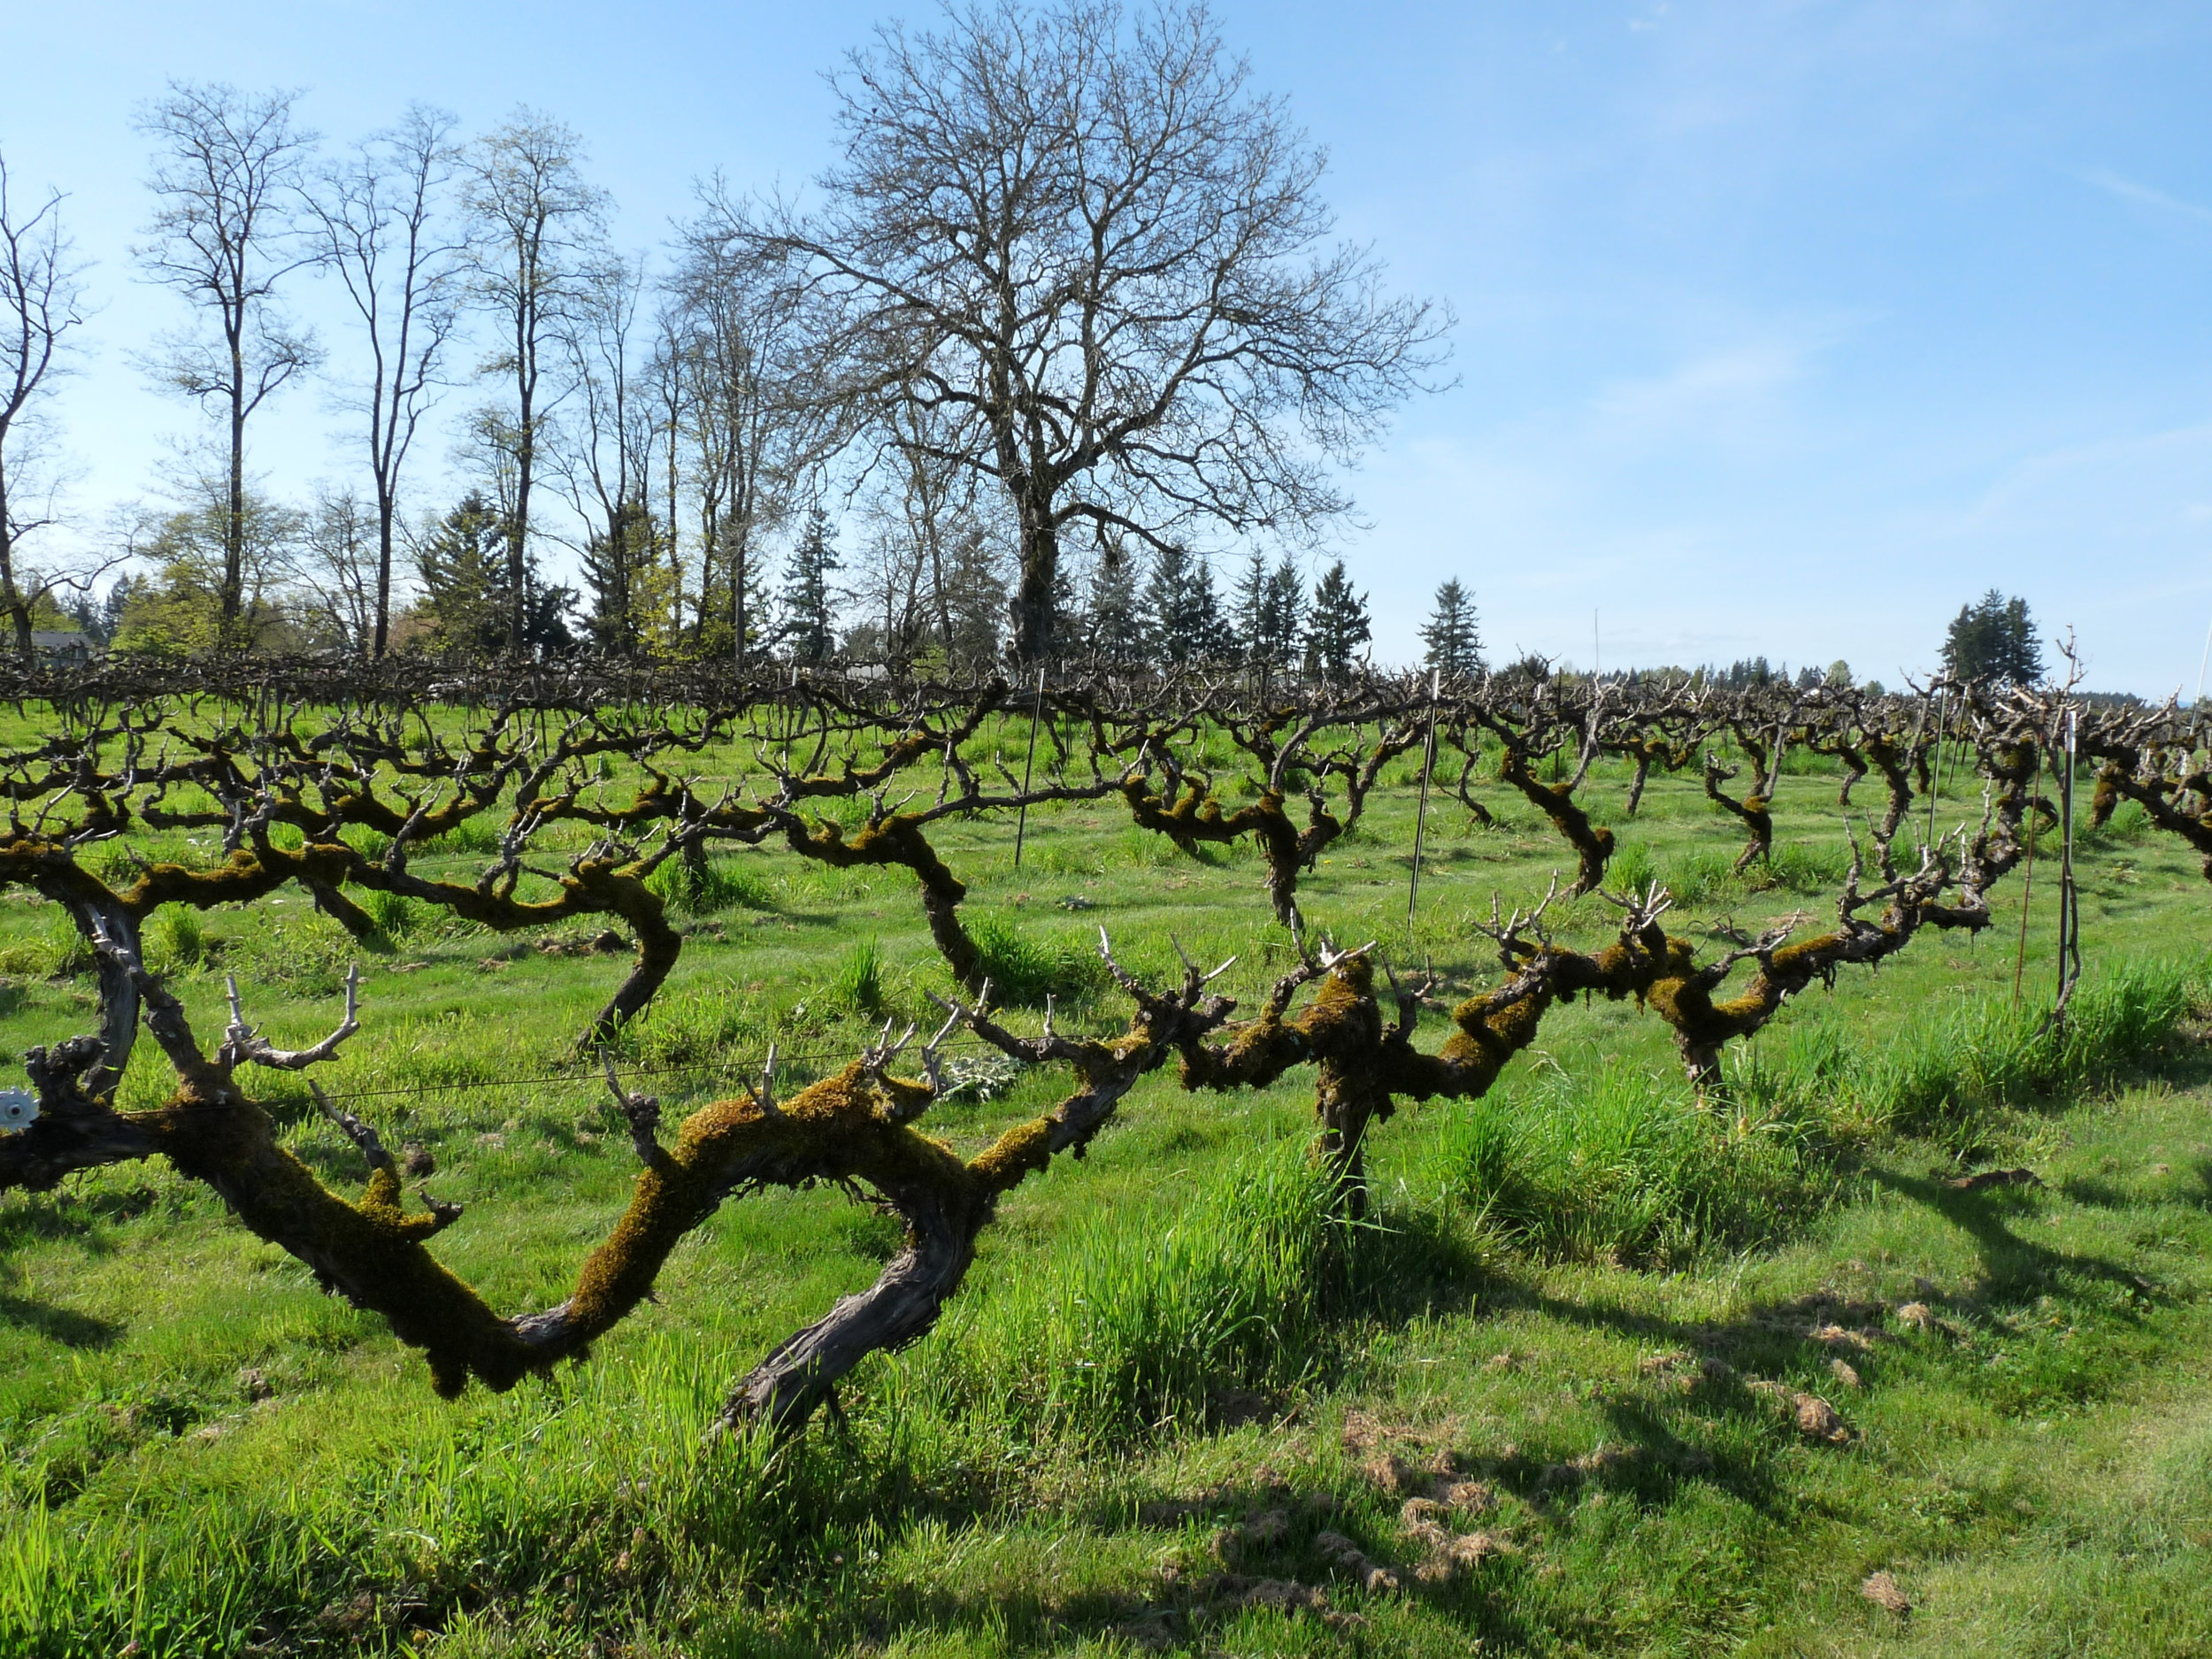 Today visitors to English Estate Winery can enjoy the fruits of 35-year old pinot noir vines planted in Clark County and that is thrilling! Photo courtesy of Viki Eierdam.